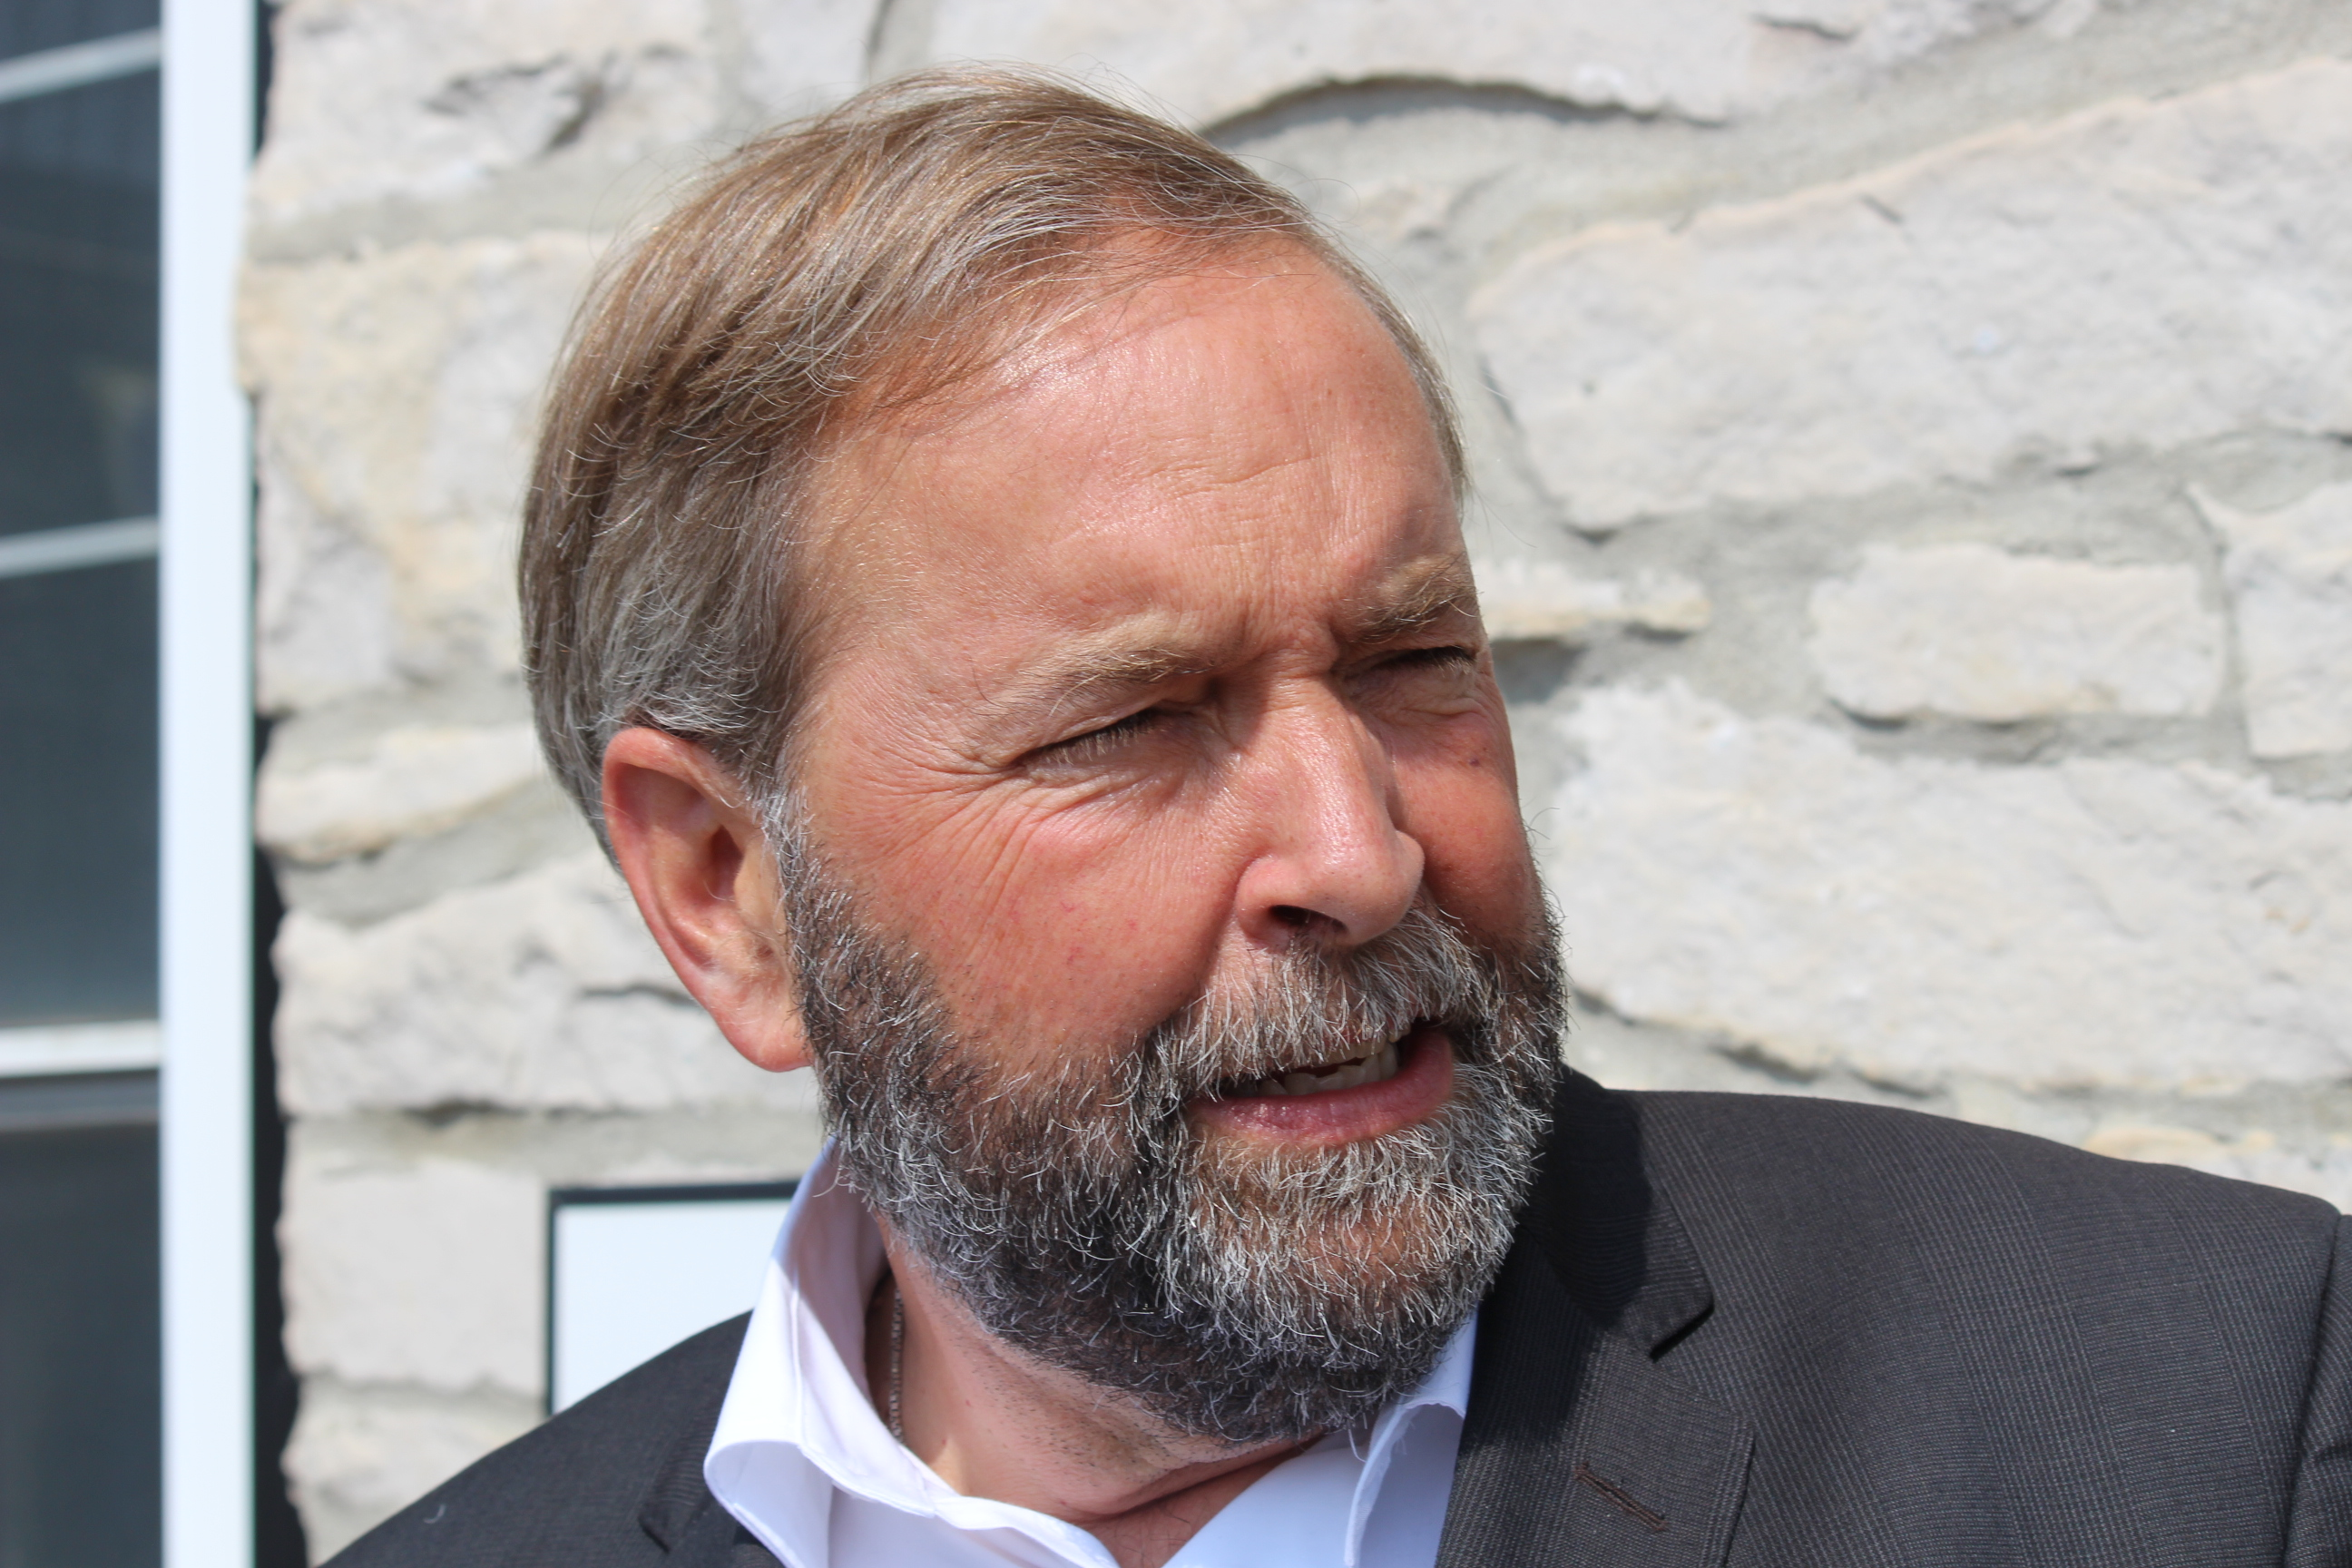 Federal NDP Leader Thomas Mulcair meeting with veterans in Amherstburg, August 21 2014. (Photo by Adelle Loiselle.)